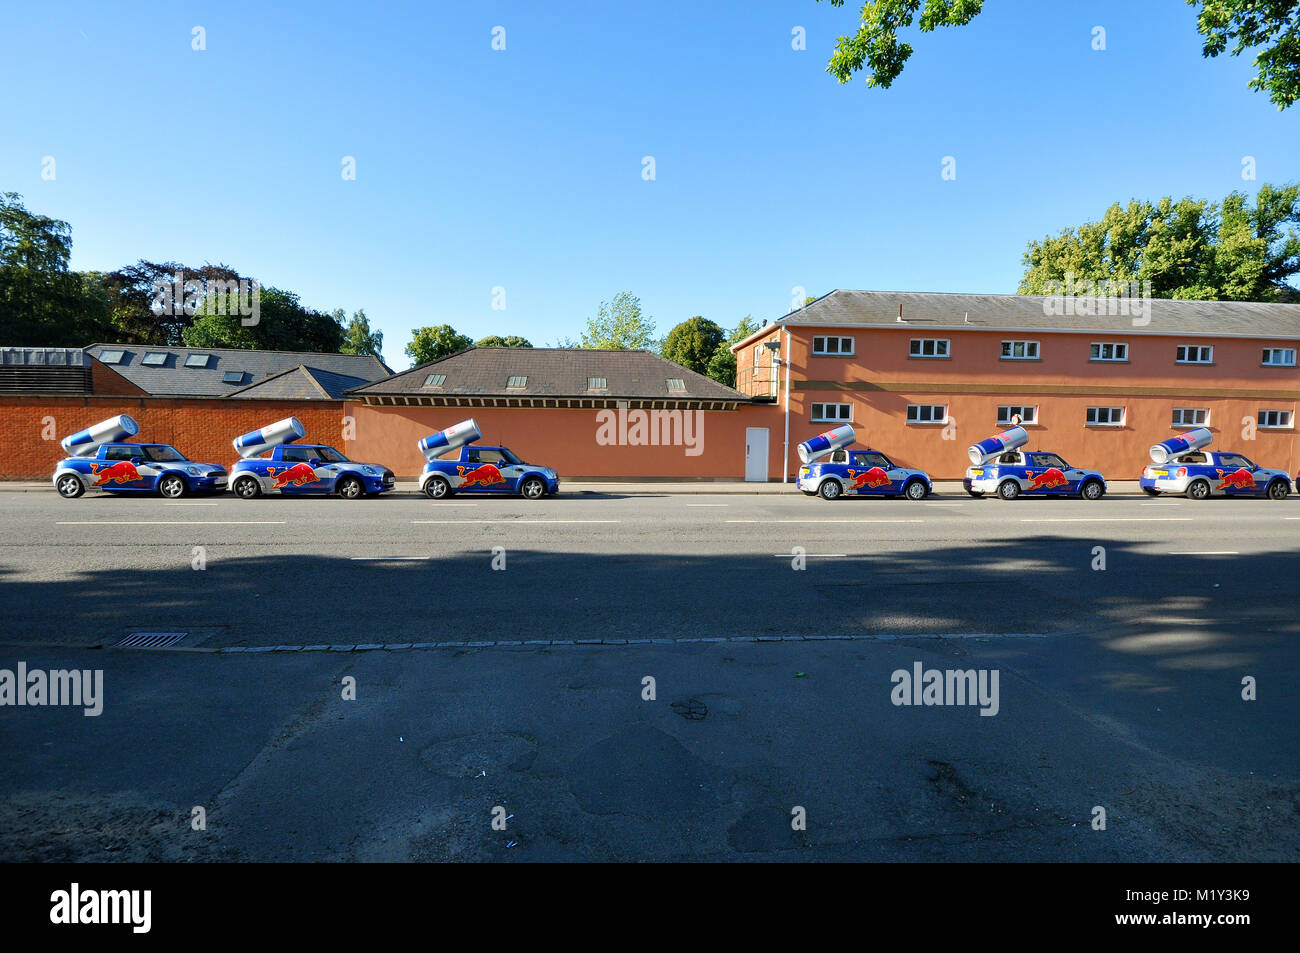 Red Bull promotional Mini cars lined up outside Royal Ascot racecourse during the Red Bull Air Race event - Stock Image